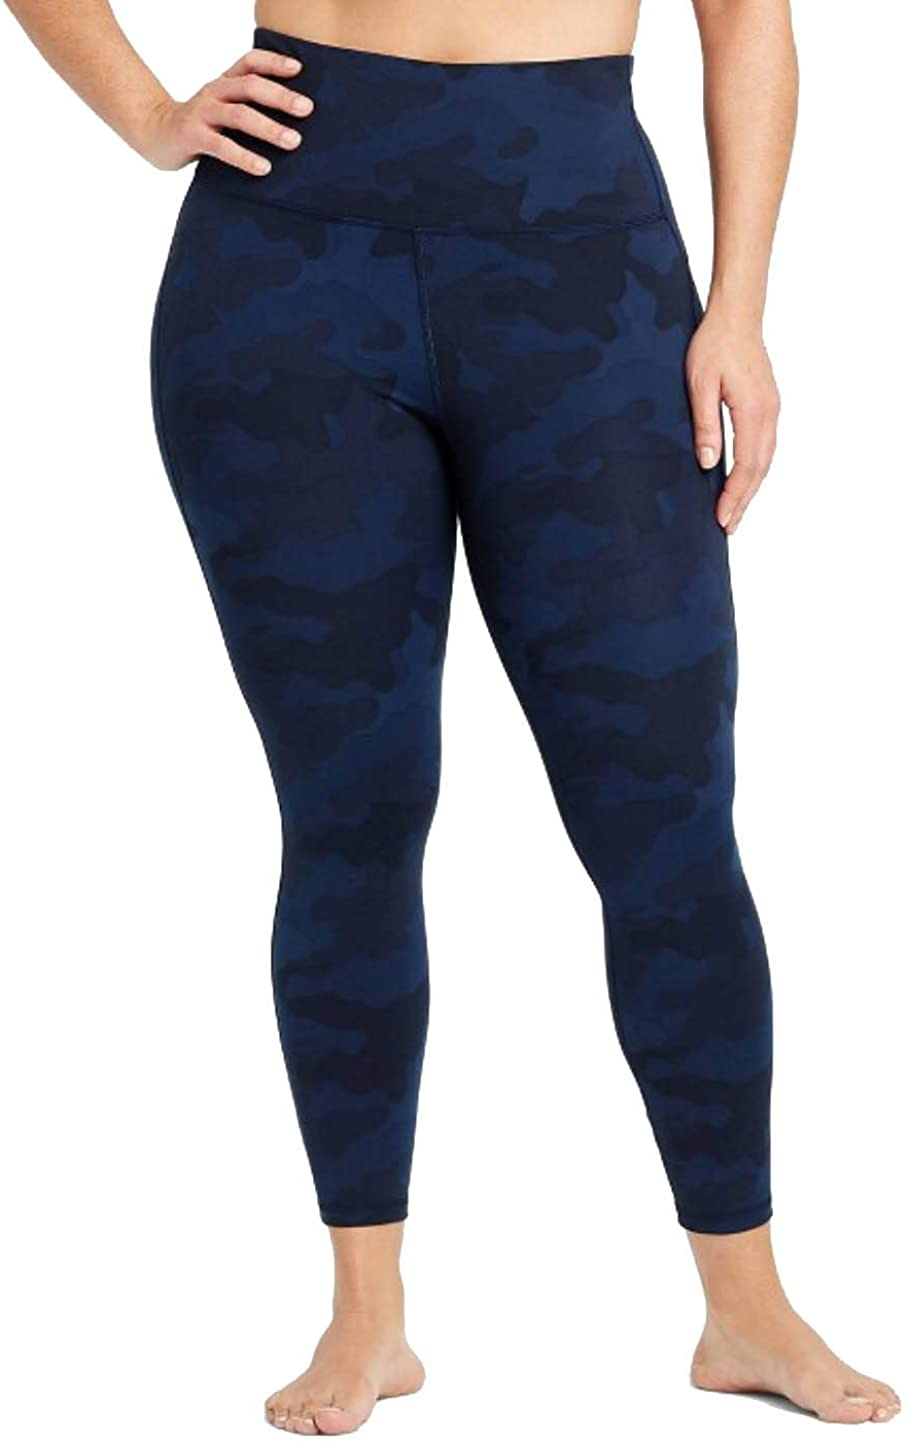 All in Motion Women's Camo Print Contour Curvy High-Waisted 7/8 Legging with Power Waist - Navy - (XX-Large)